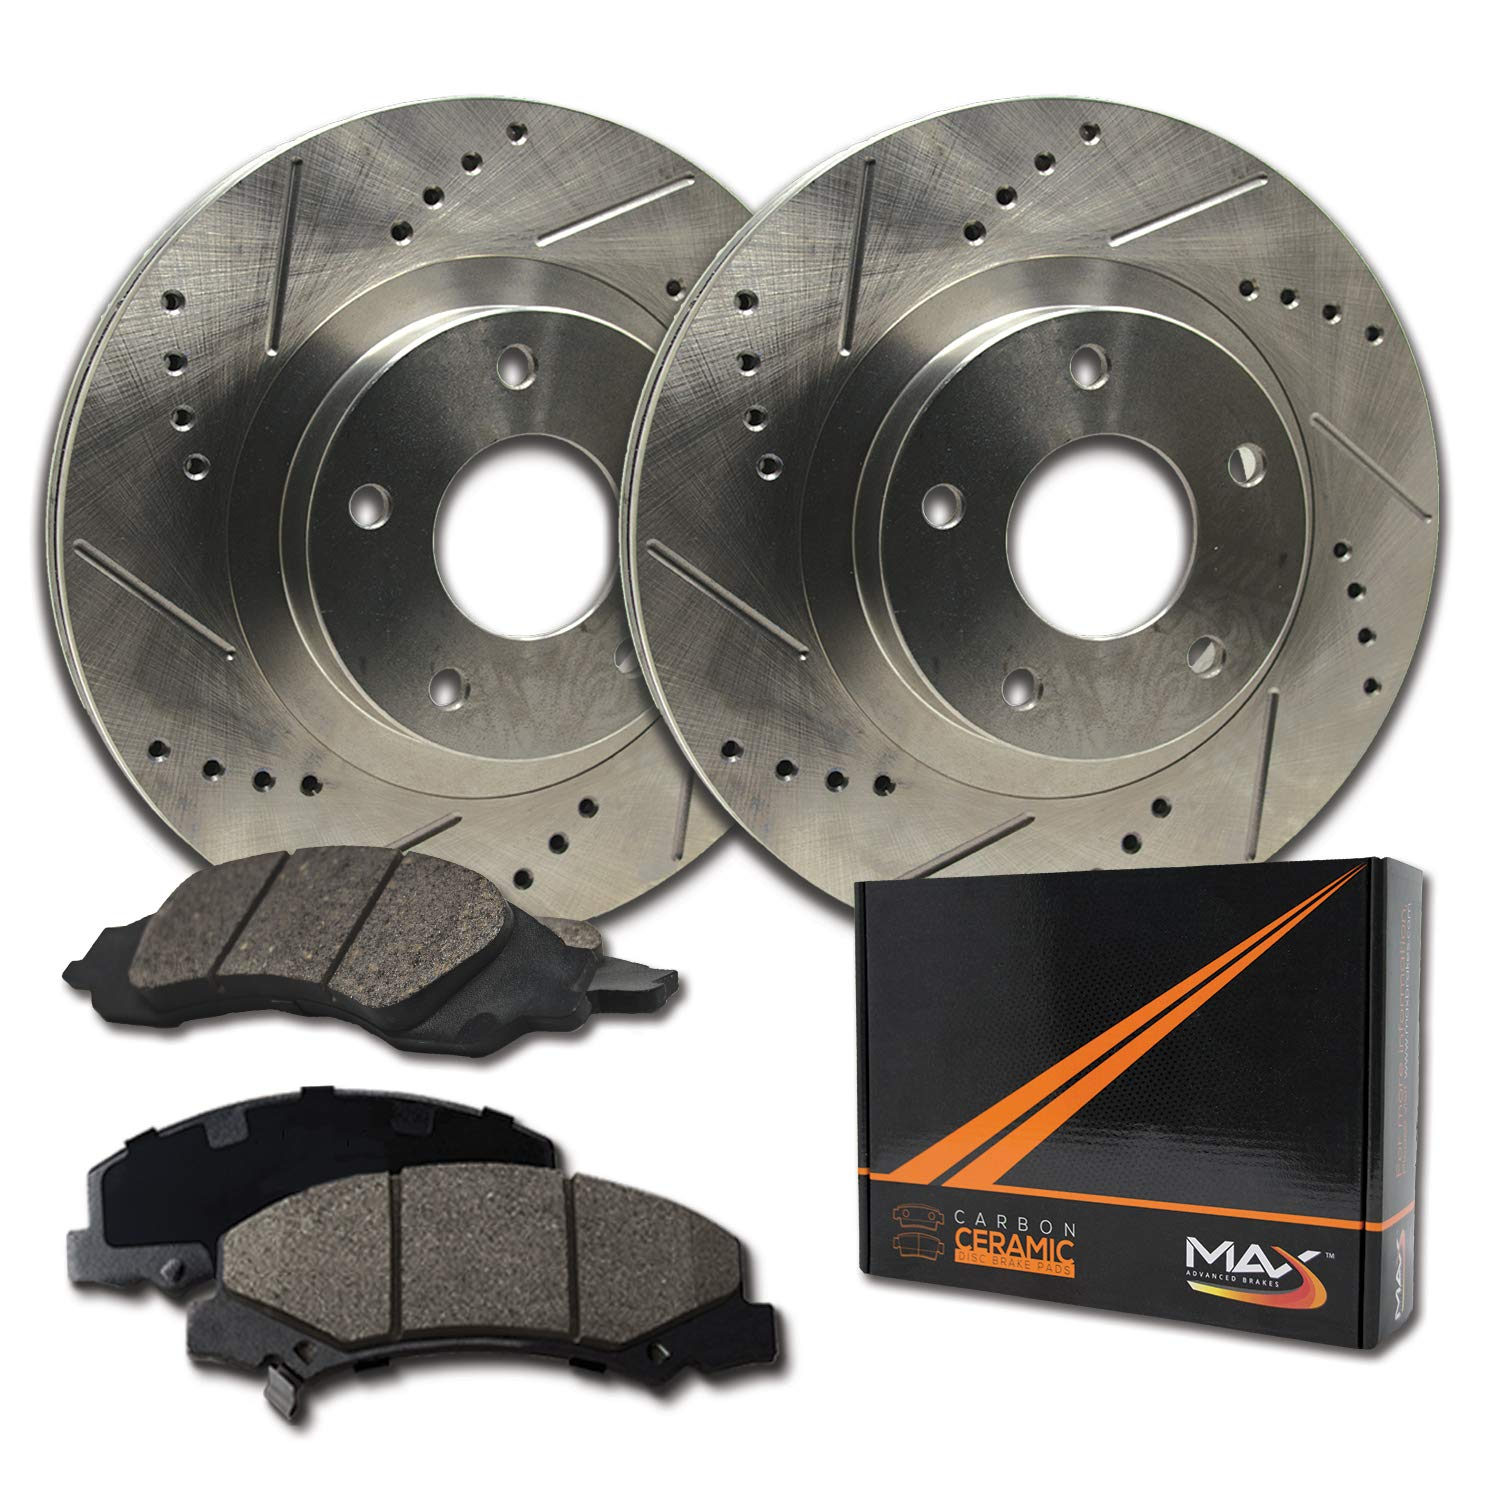 KT093832 Fits: 2007-2012 Lexus ES350 Max Brakes Rear Performance Brake Kit 2008-2011 Toyota Avalon Camry Premium Slotted Drilled Rotors + Ceramic Pads